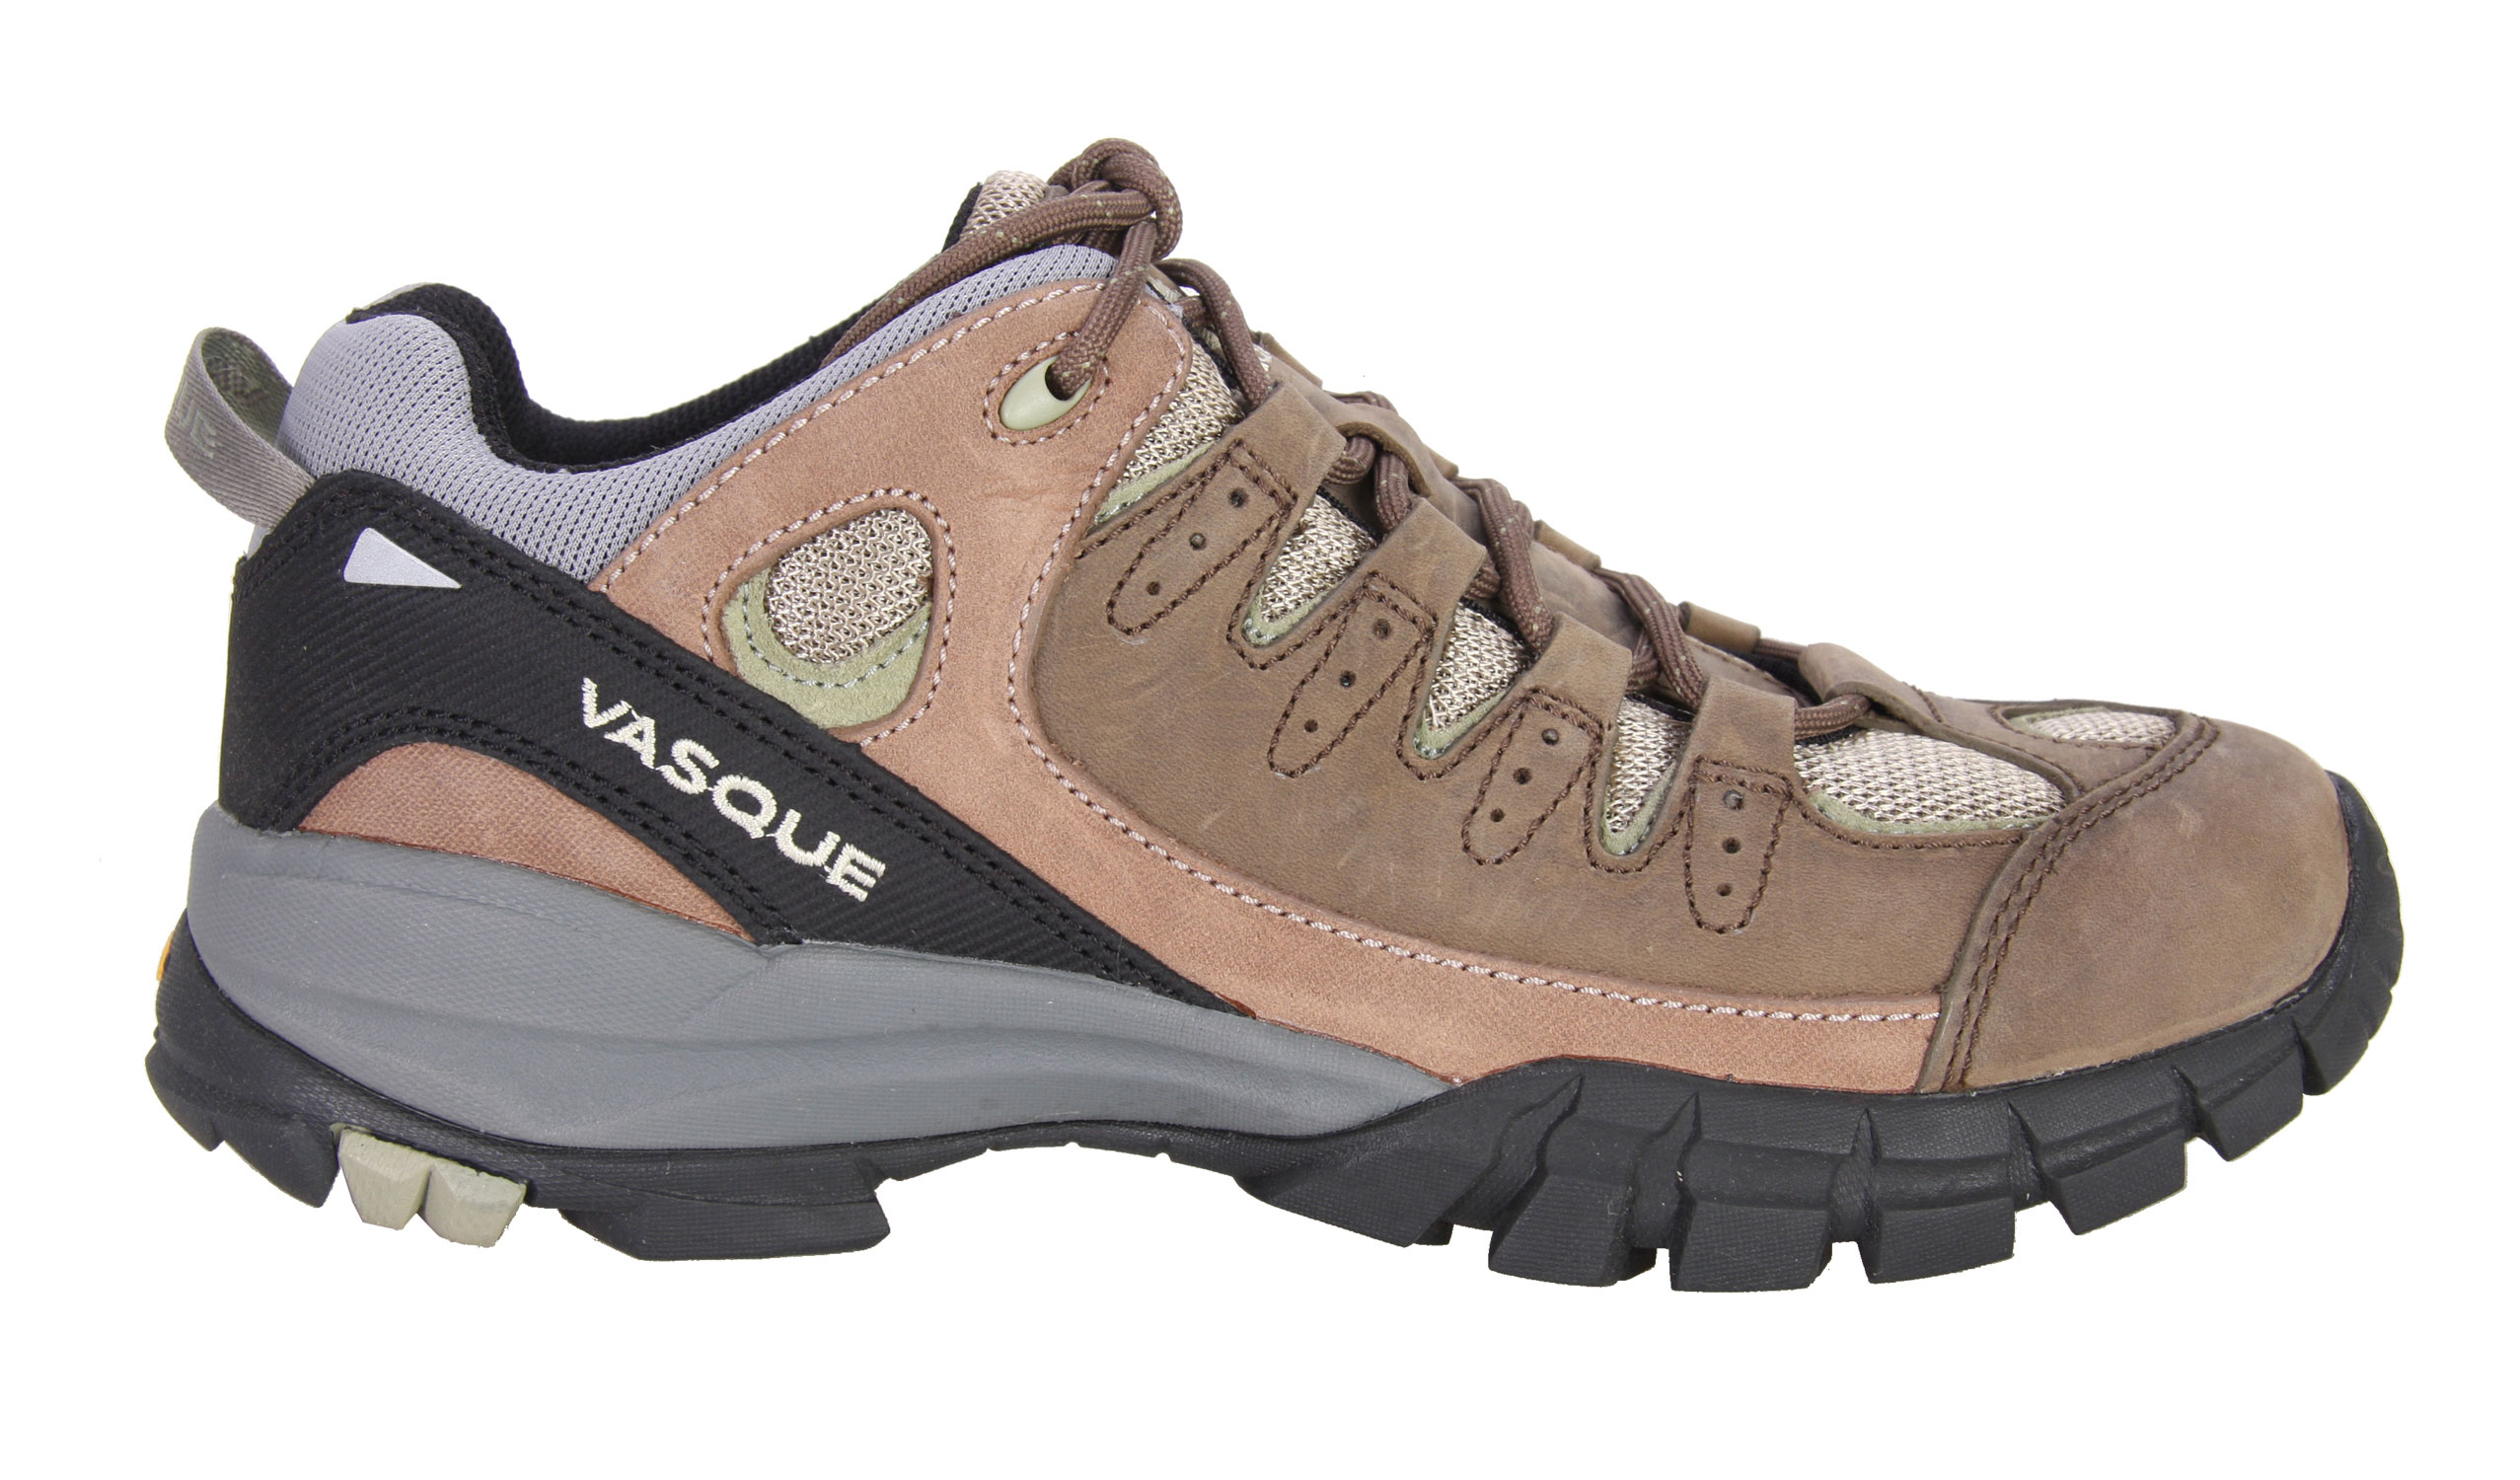 Camp and Hike This agile performer has tenacious trip thanks to the Vibram Ananasi sole and the athletic fit that will have you coming back for more. Vasque's Nubuck leather and airmesh upper provide the supple comfort and breathability that make this hiking shoe their #1 crossover seller.Key Features of the Vasque Mantra Hiking Shoes: Weight: 1lb. 8 oz. (680g) Outsole: Vibram Ananasi Last: Perpetuum Midsole: Molded EVA - $59.95